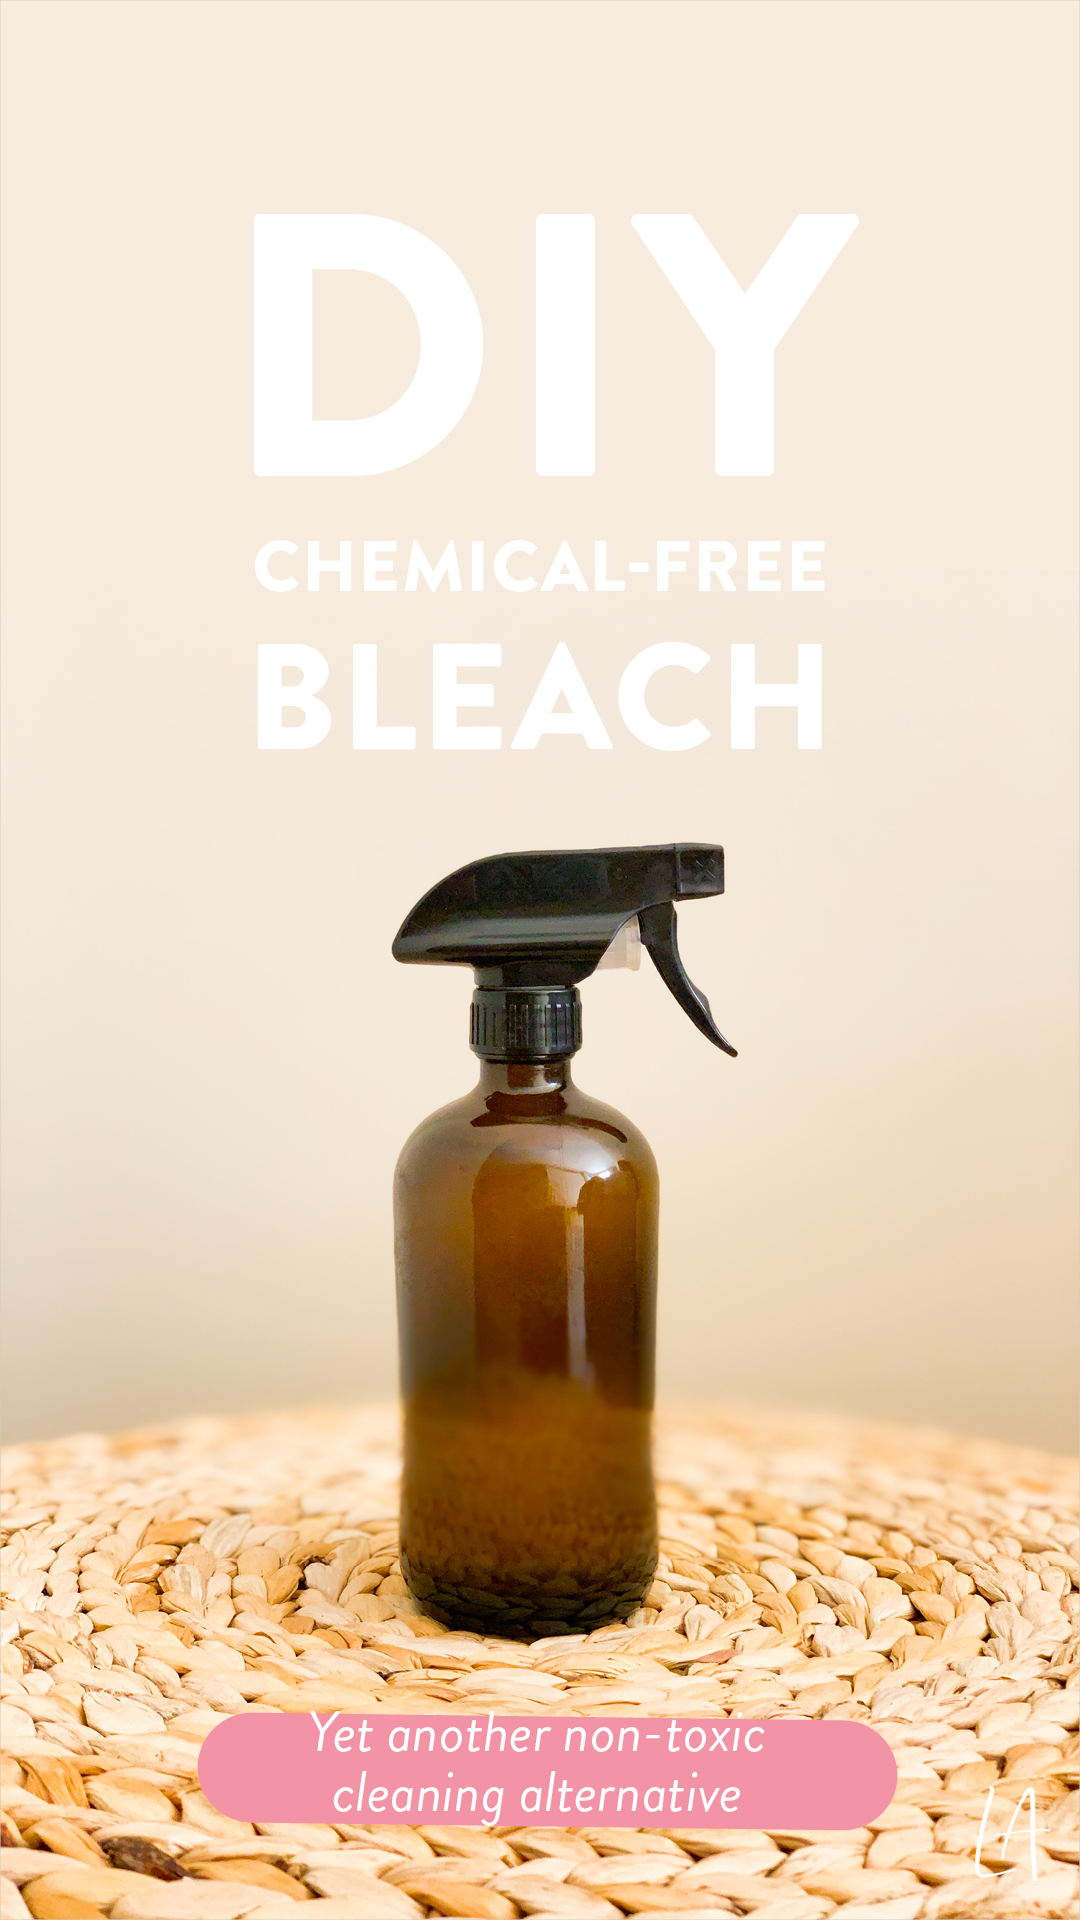 How to make chemical-free bleach